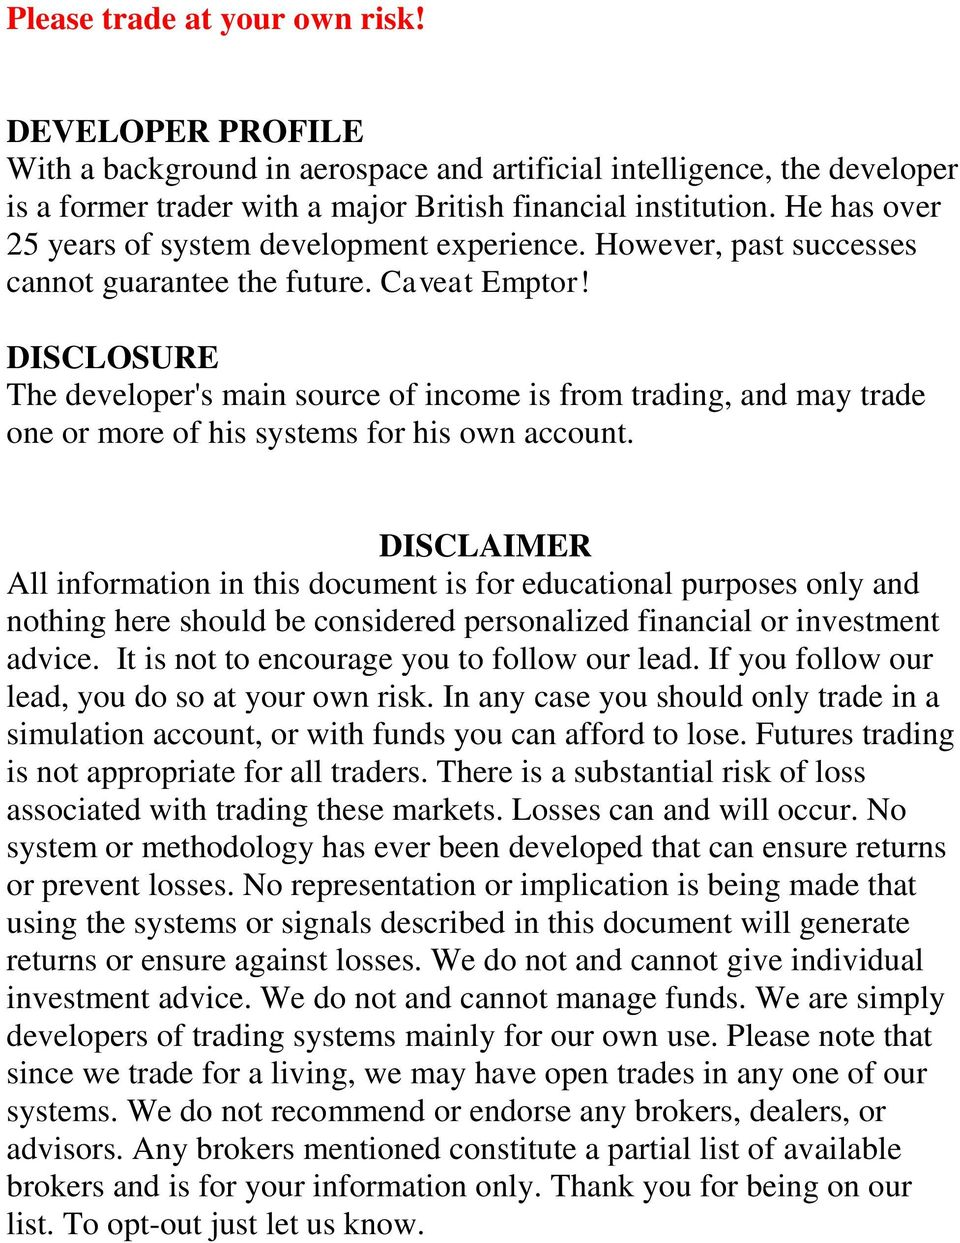 DISCLOSURE The developer's main source of income is from trading, and may trade one or more of his systems for his own account.